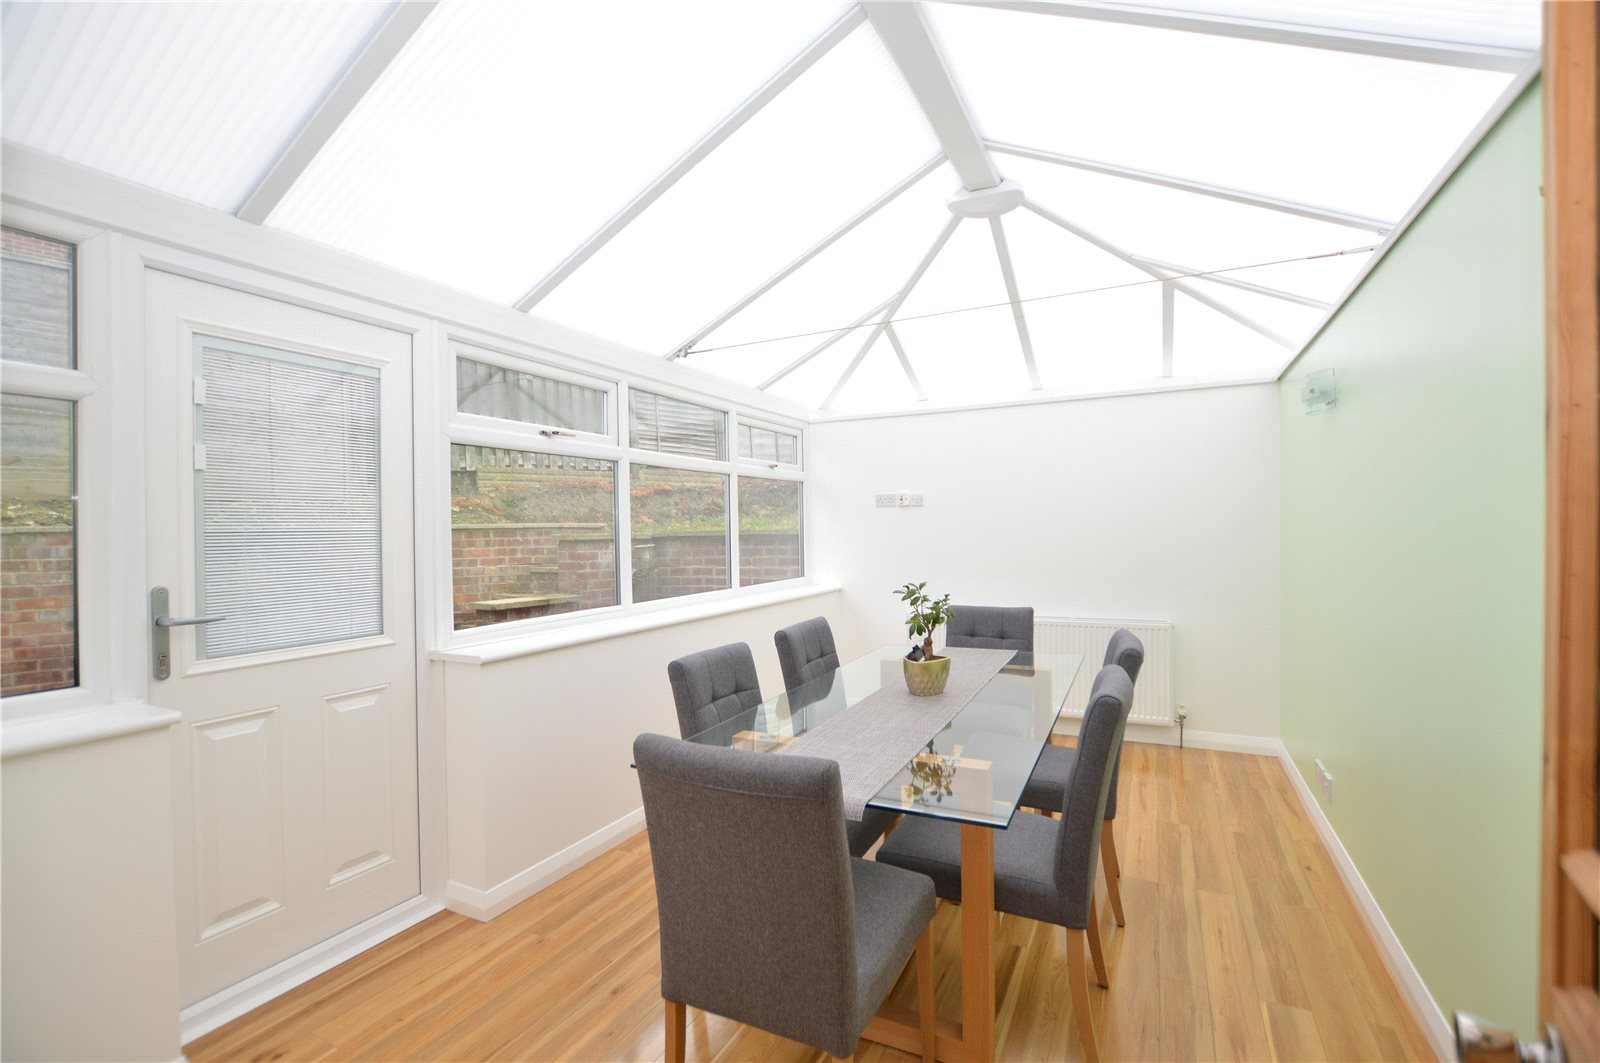 property for sale in Morley. dining room conservatory area